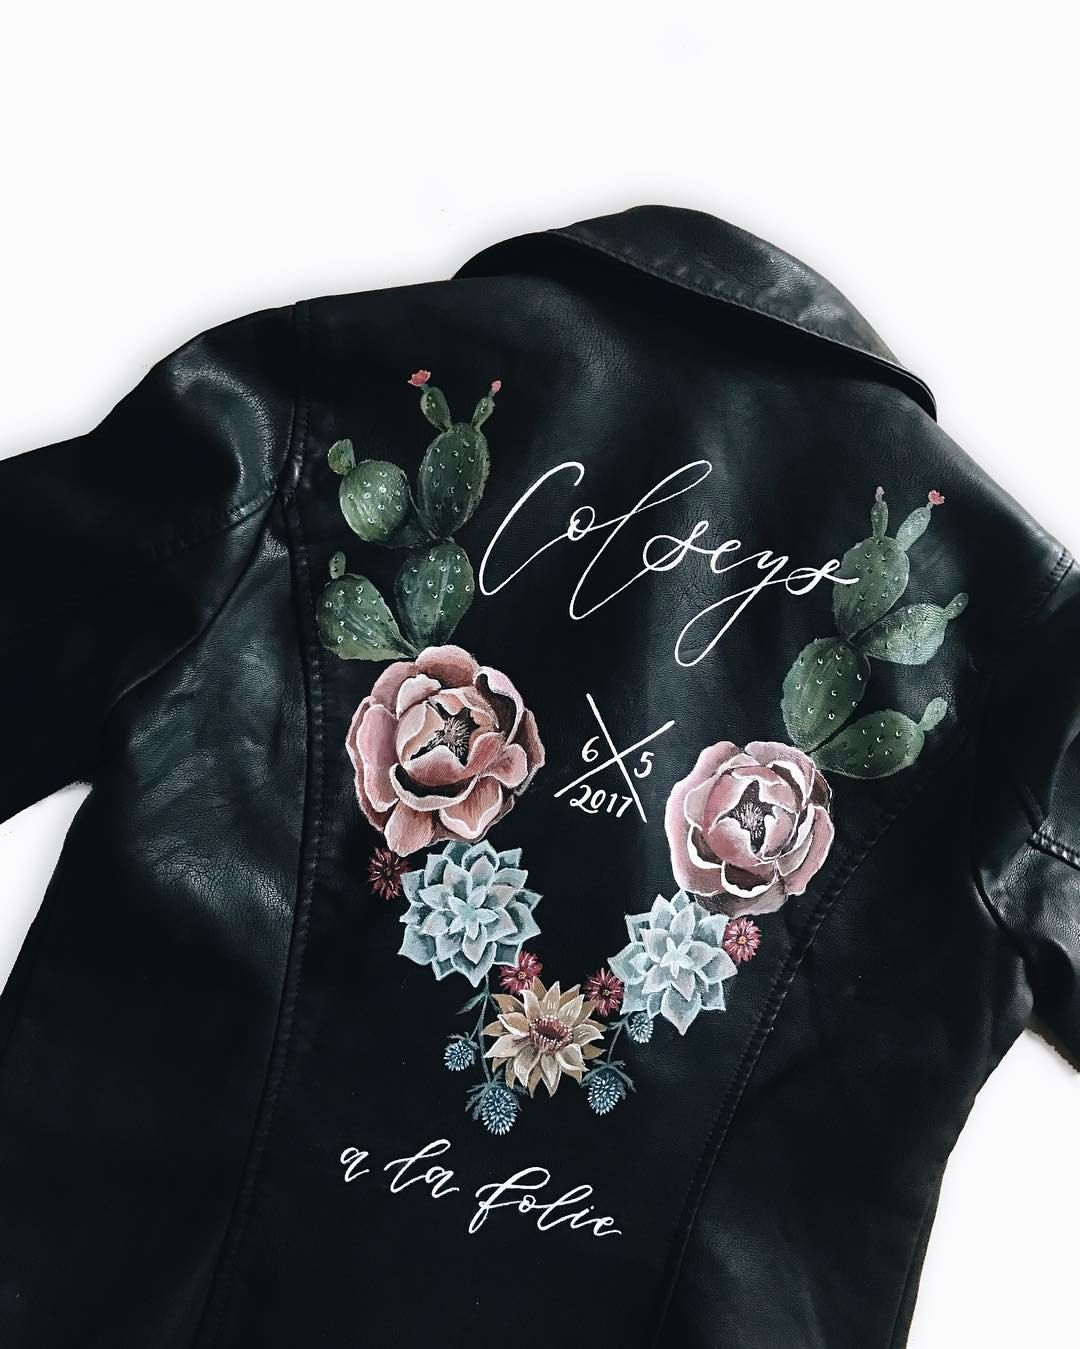 ... Your Wedding Day – Fashion Trends. Hand Painted Leather Jacket by   bashcalligraphy   Bride Leather Jacket   2018 Wedding Trends   Boho  Wedding Shop now d280c295a2619